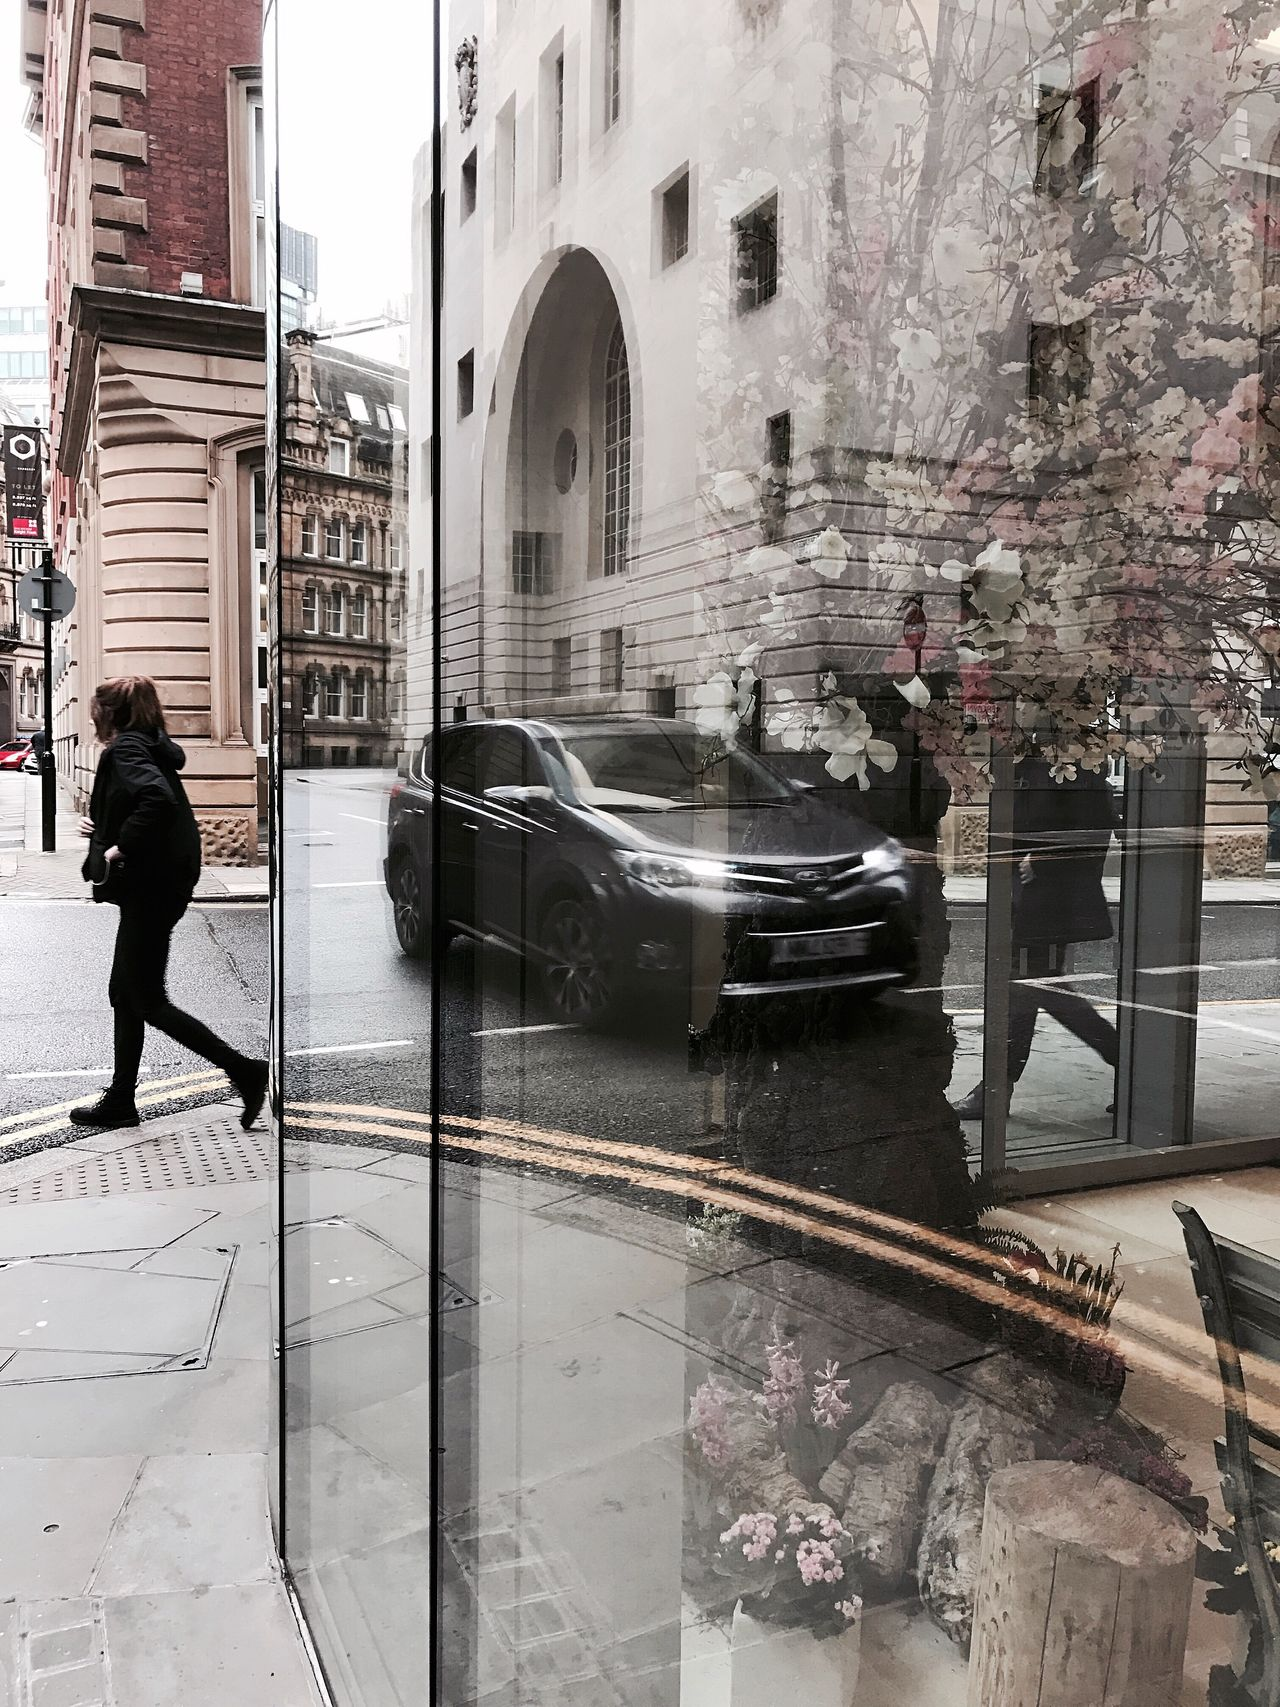 Reflections of life Building Exterior Architecture Built Structure Walking One Person Transportation City Full Length Real People Car Mode Of Transport Women Girl Life Capture The Moment Moments Lifestyles Life In Motion Reflection Land Vehicle Adults Only Day People Outdoors Adult